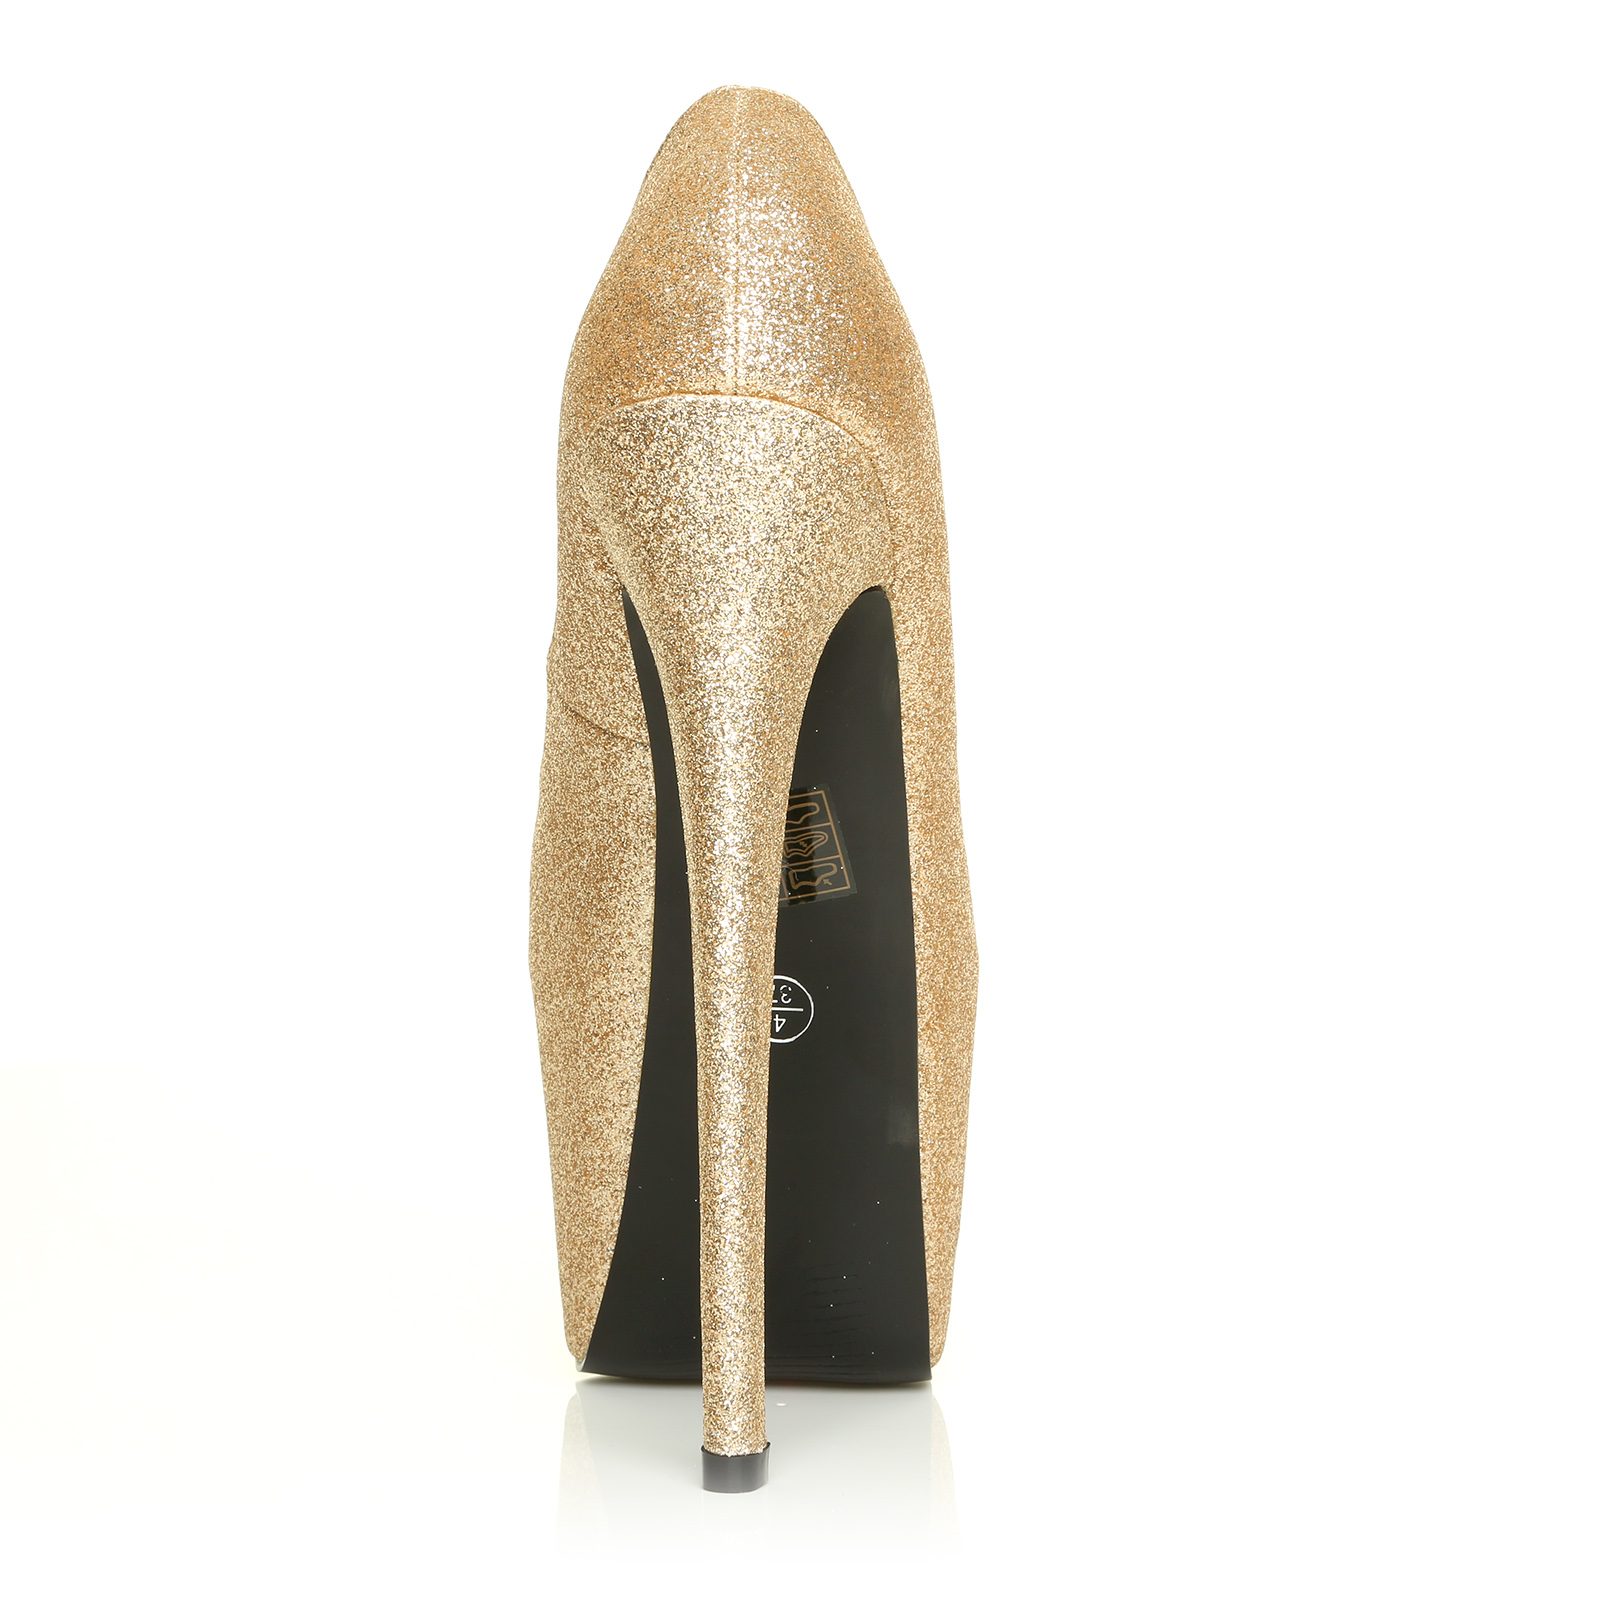 BRAND-NEW-WOMENS-LADIES-VERY-HIGH-7-25-INCH-STILETTO-HEEL-SHOES-SIZE-3-4-5-6-7-8